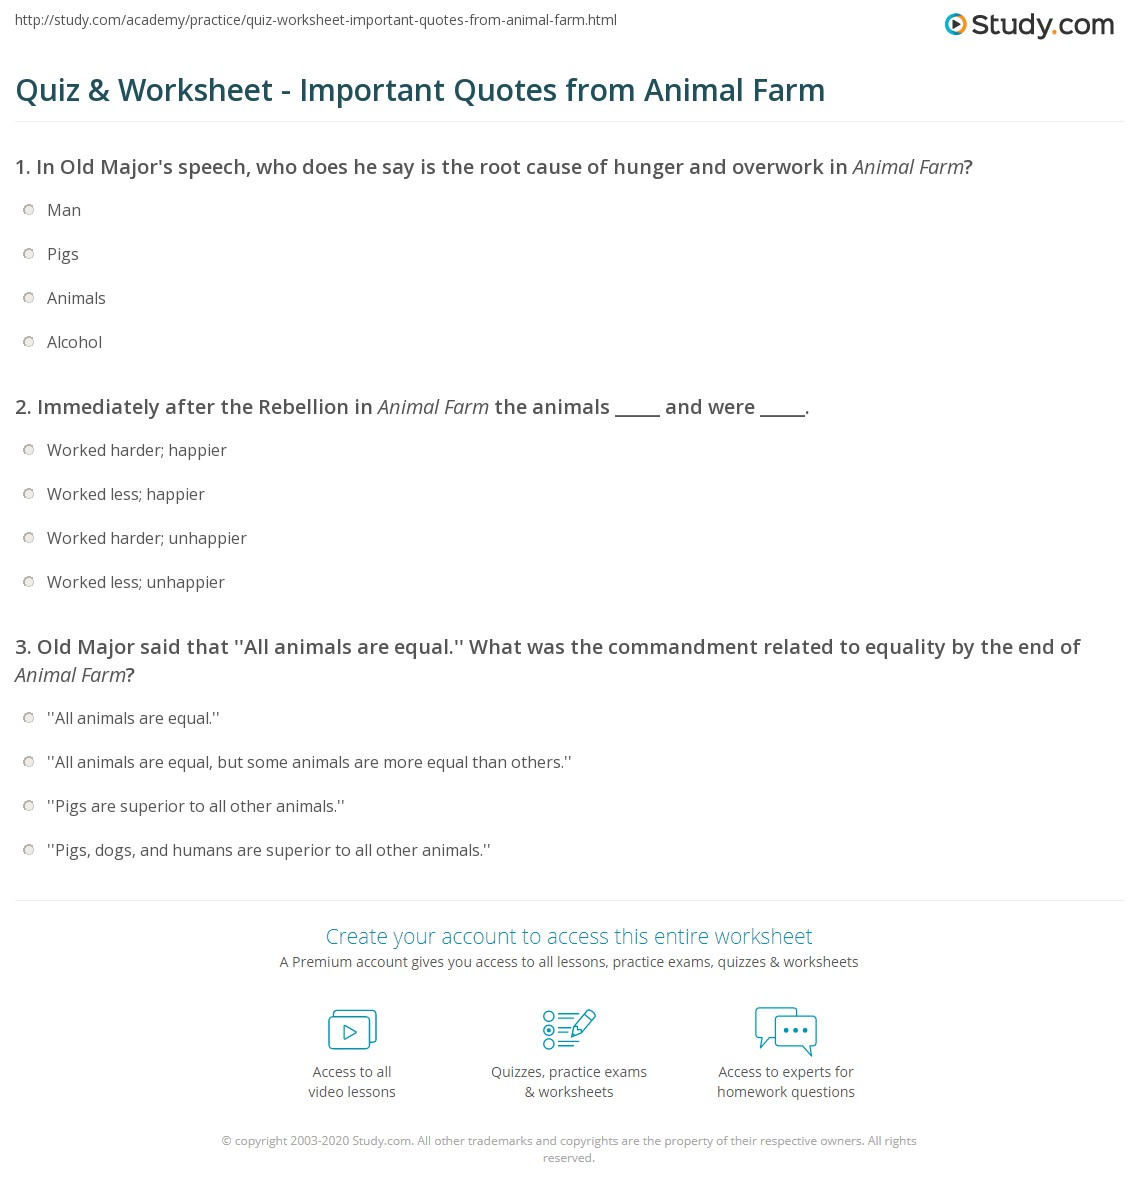 Animal Farm Quotes Quiz & Worksheet  Important Quotes From Animal Farm  Study